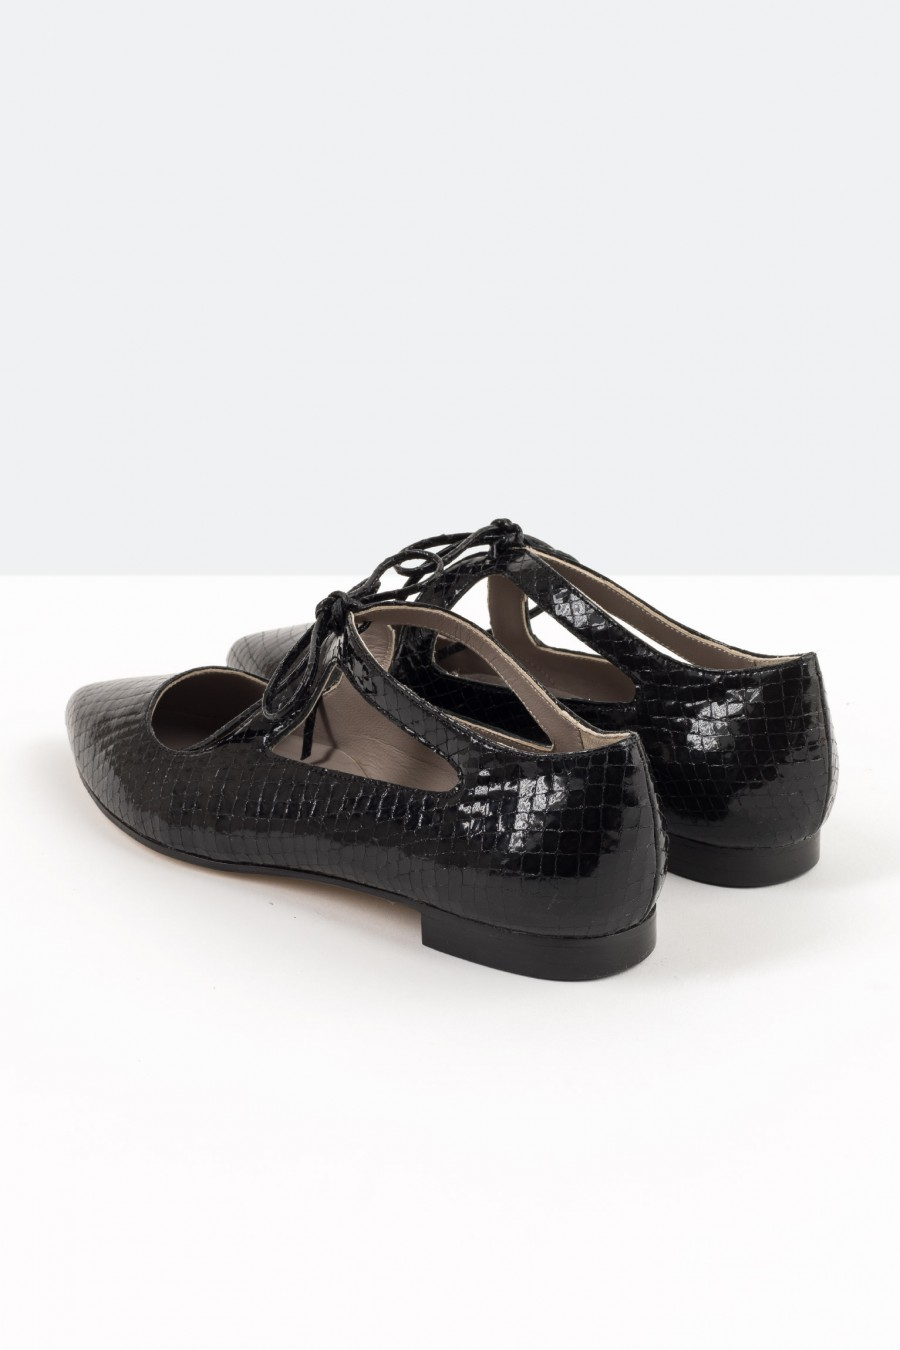 Pointed toe black patent flats